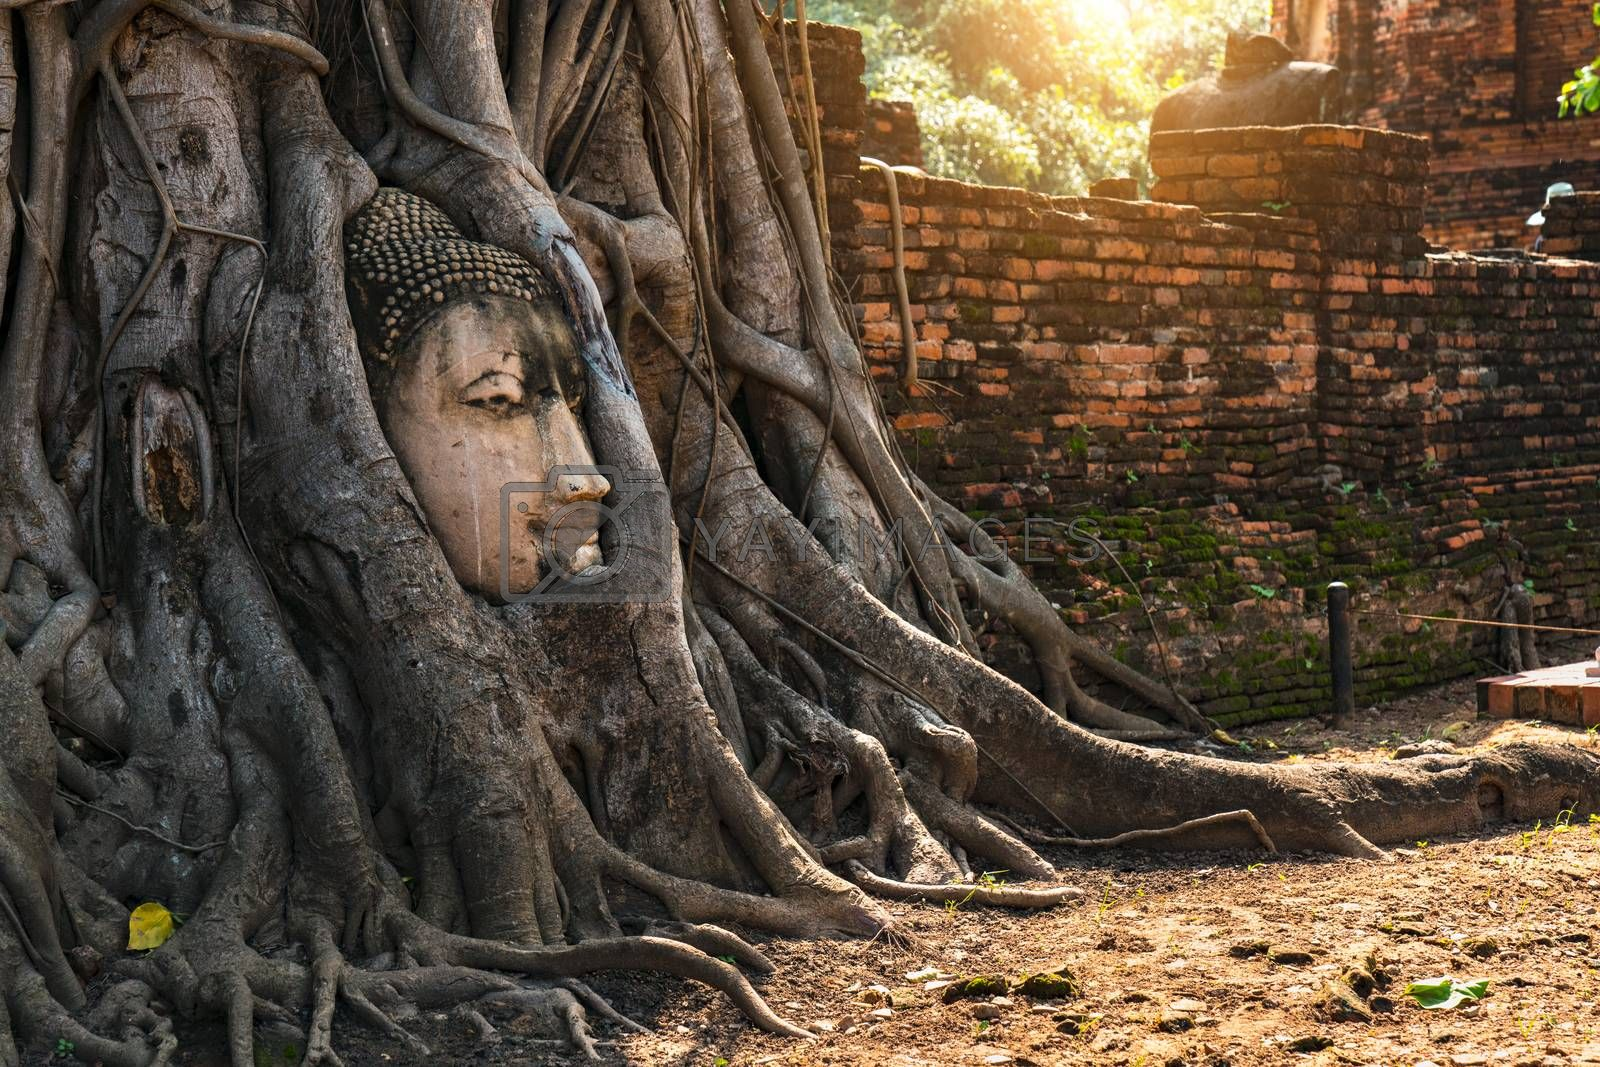 Head of Buddha statue in the tree roots at Wat Mahathat (Temple of the great relics), Ayutthaya, Thailand.